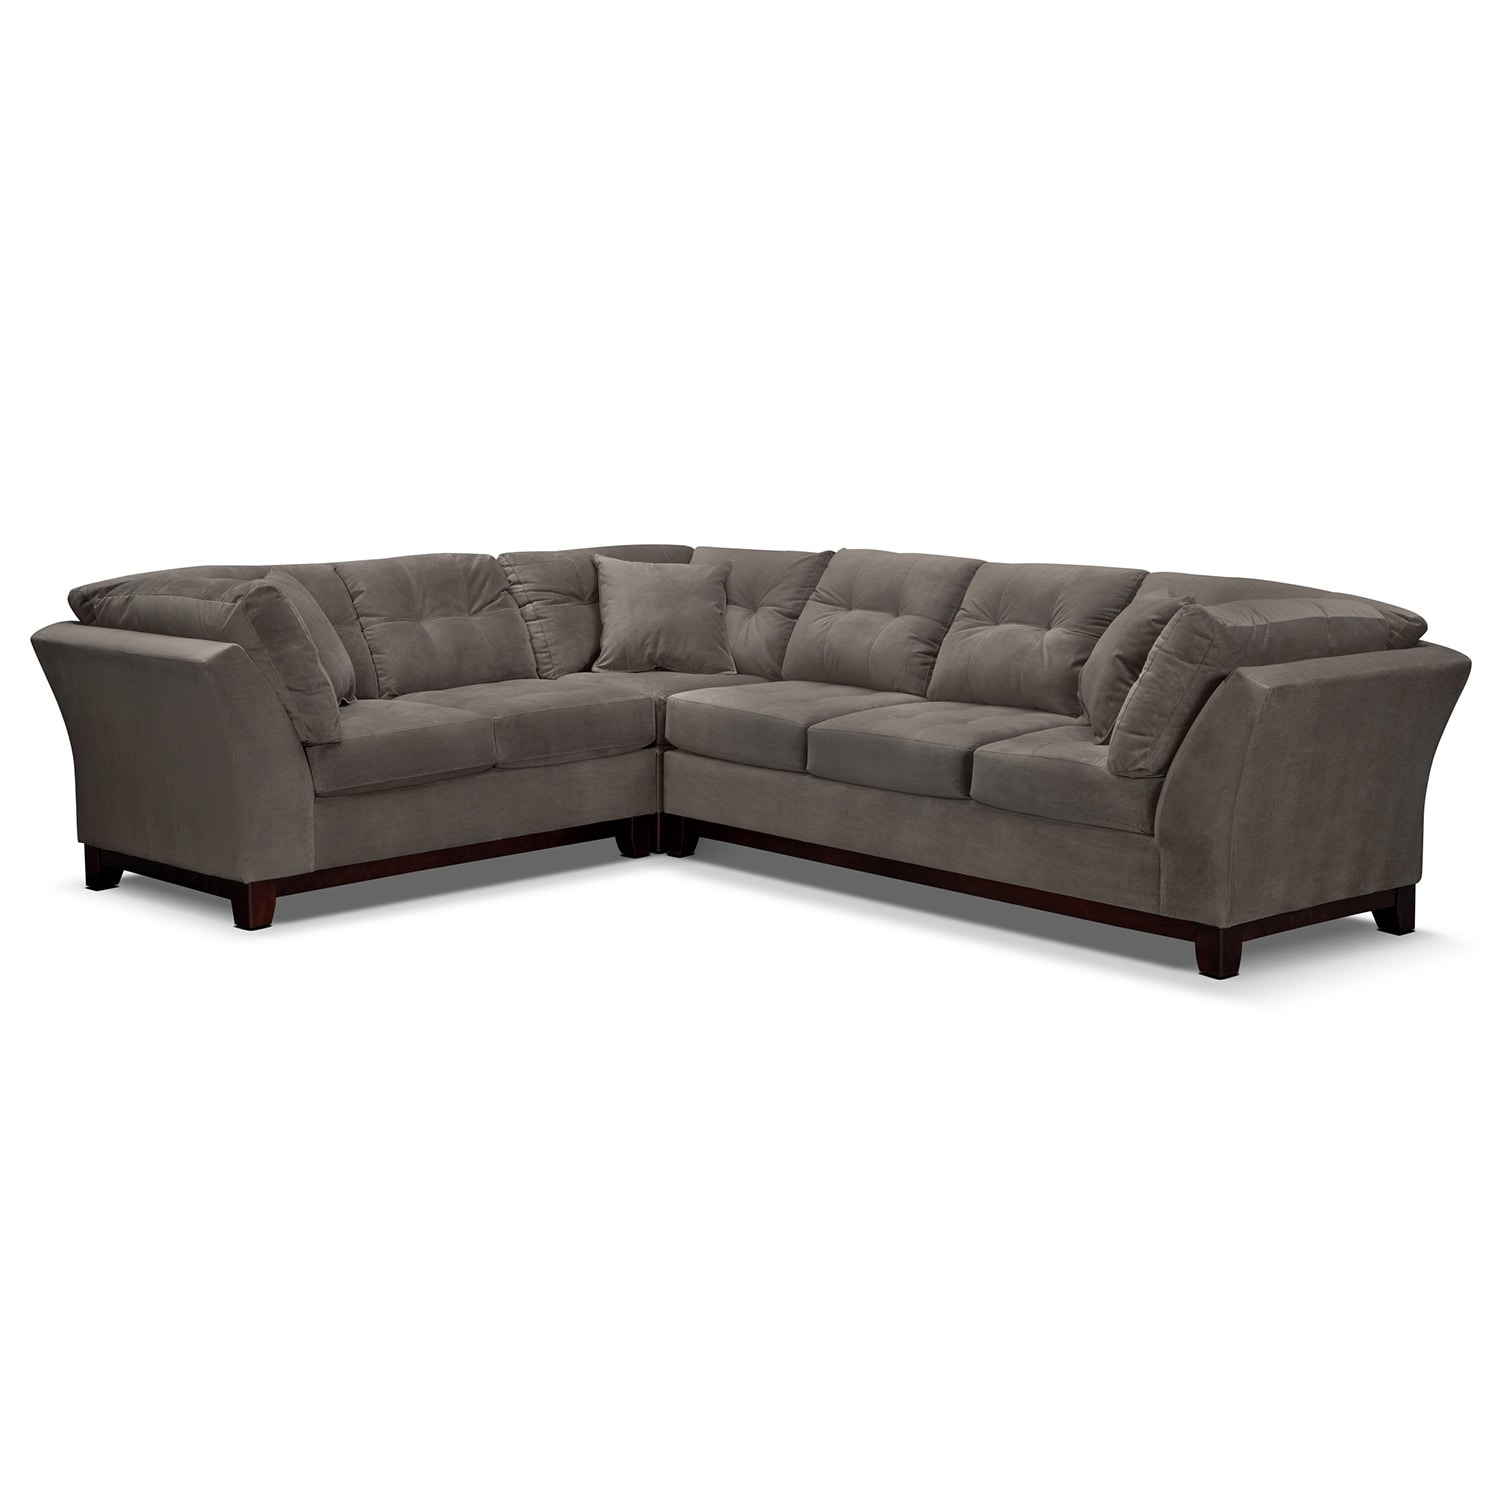 Solace 3-Piece Right-Facing Sofa Sectional - Gray